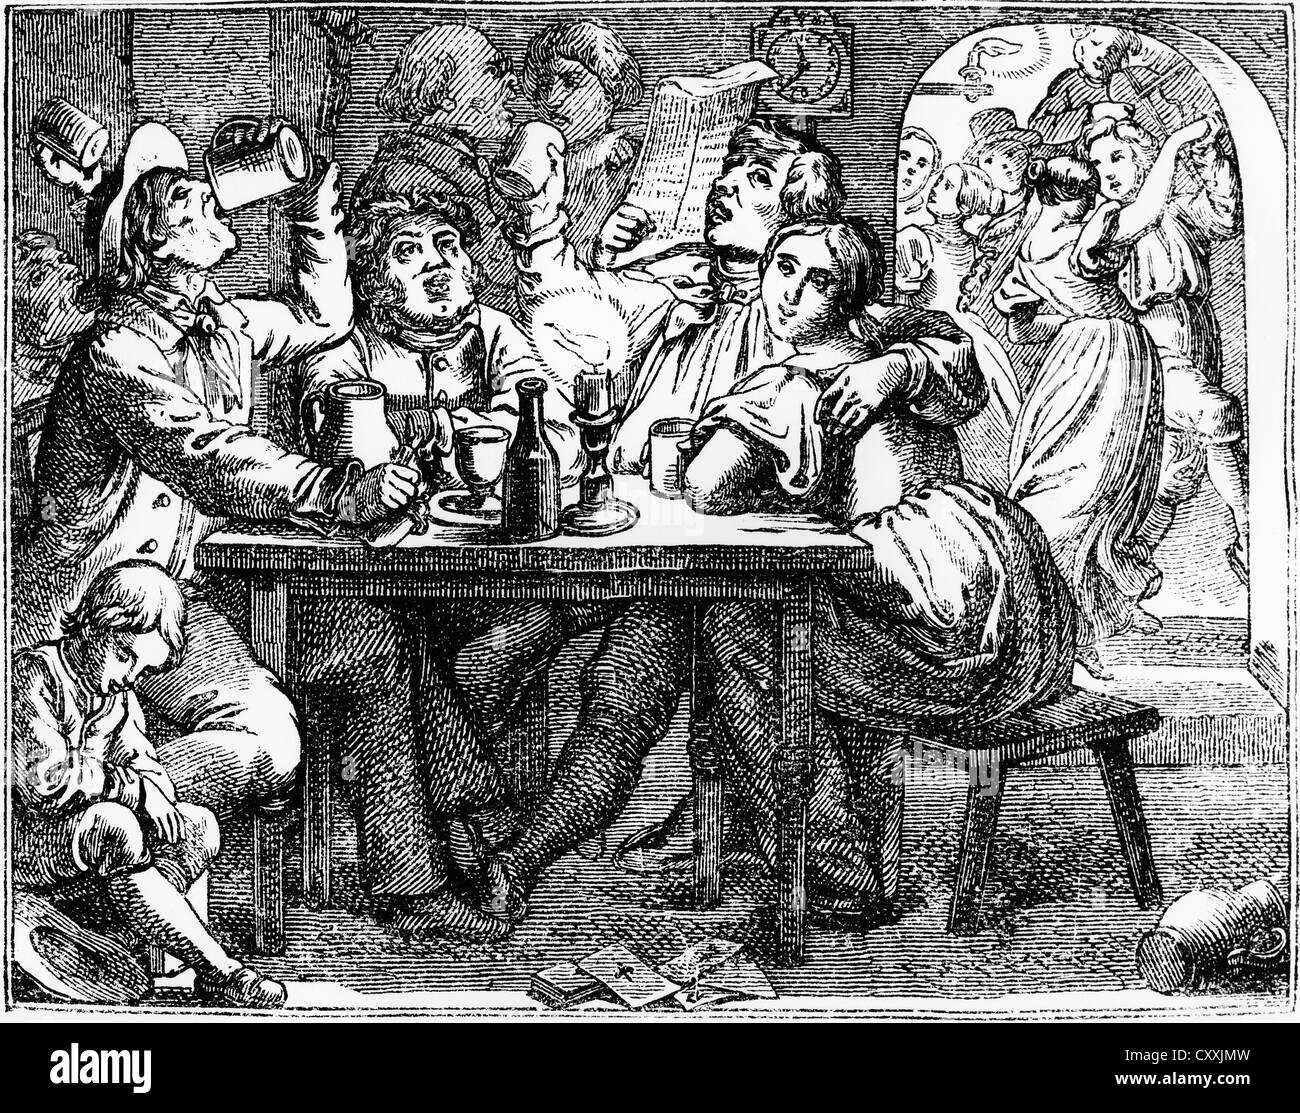 In the tavern with wine, beer and dancing, engraving, end of the 19th Century - Stock Image